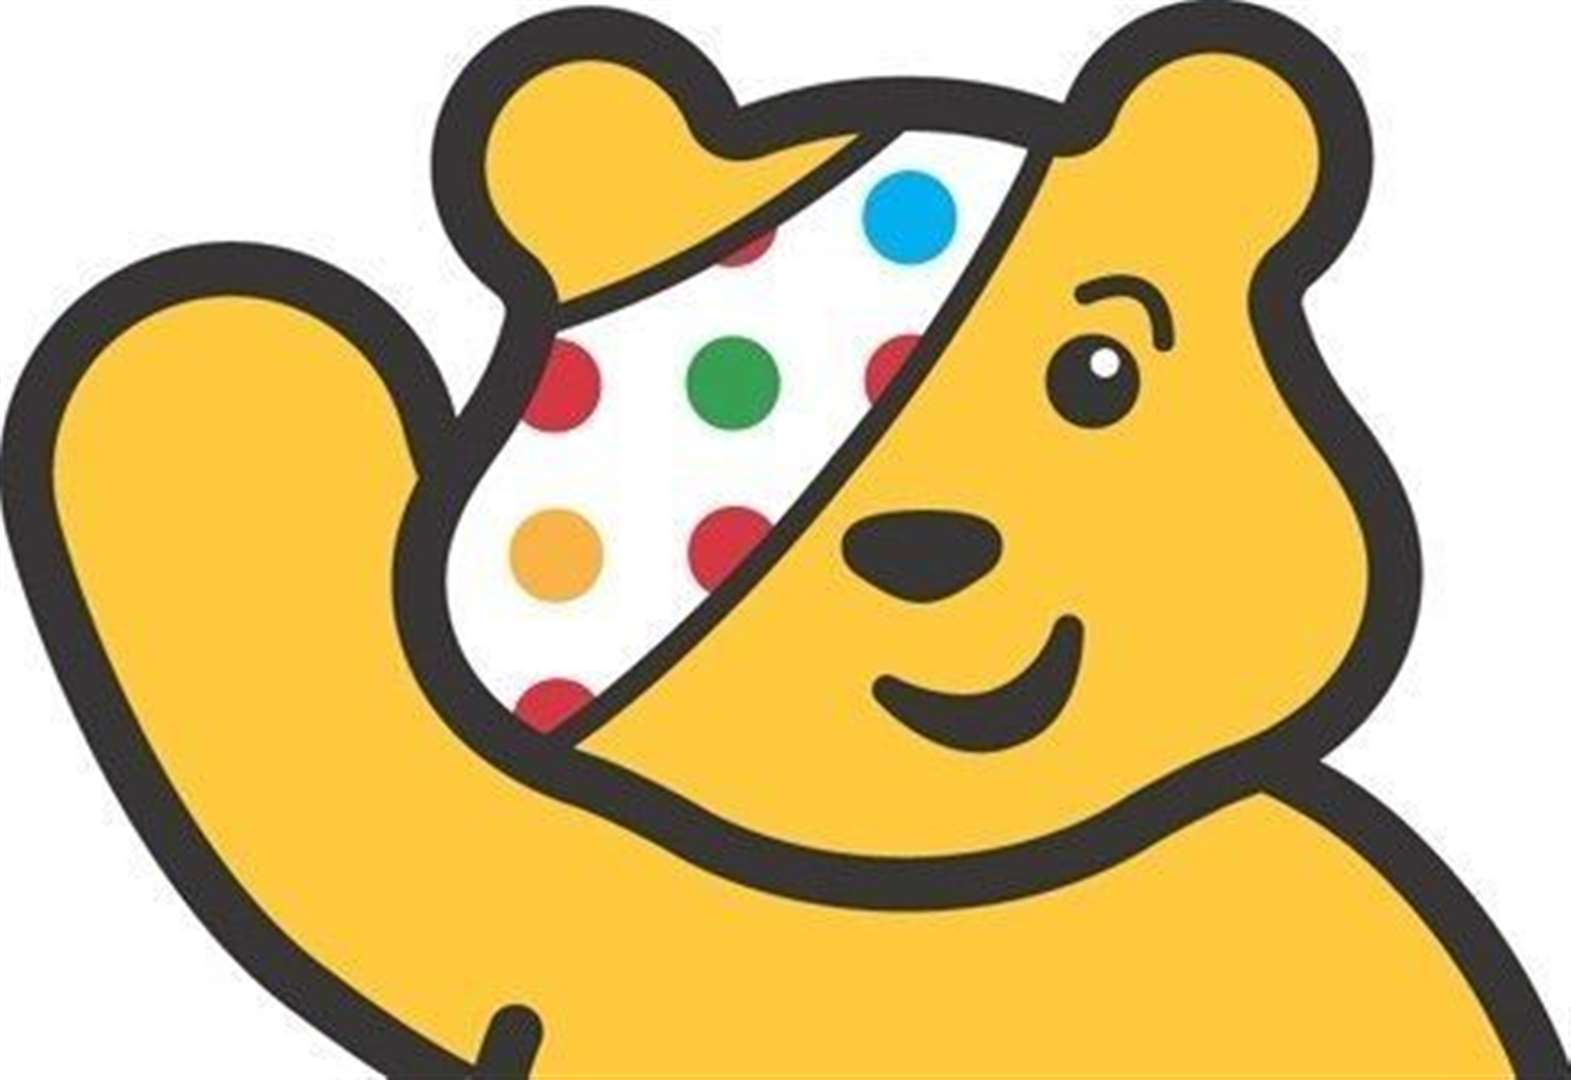 Two days until BBC Children in Need appeal - what are you doing?